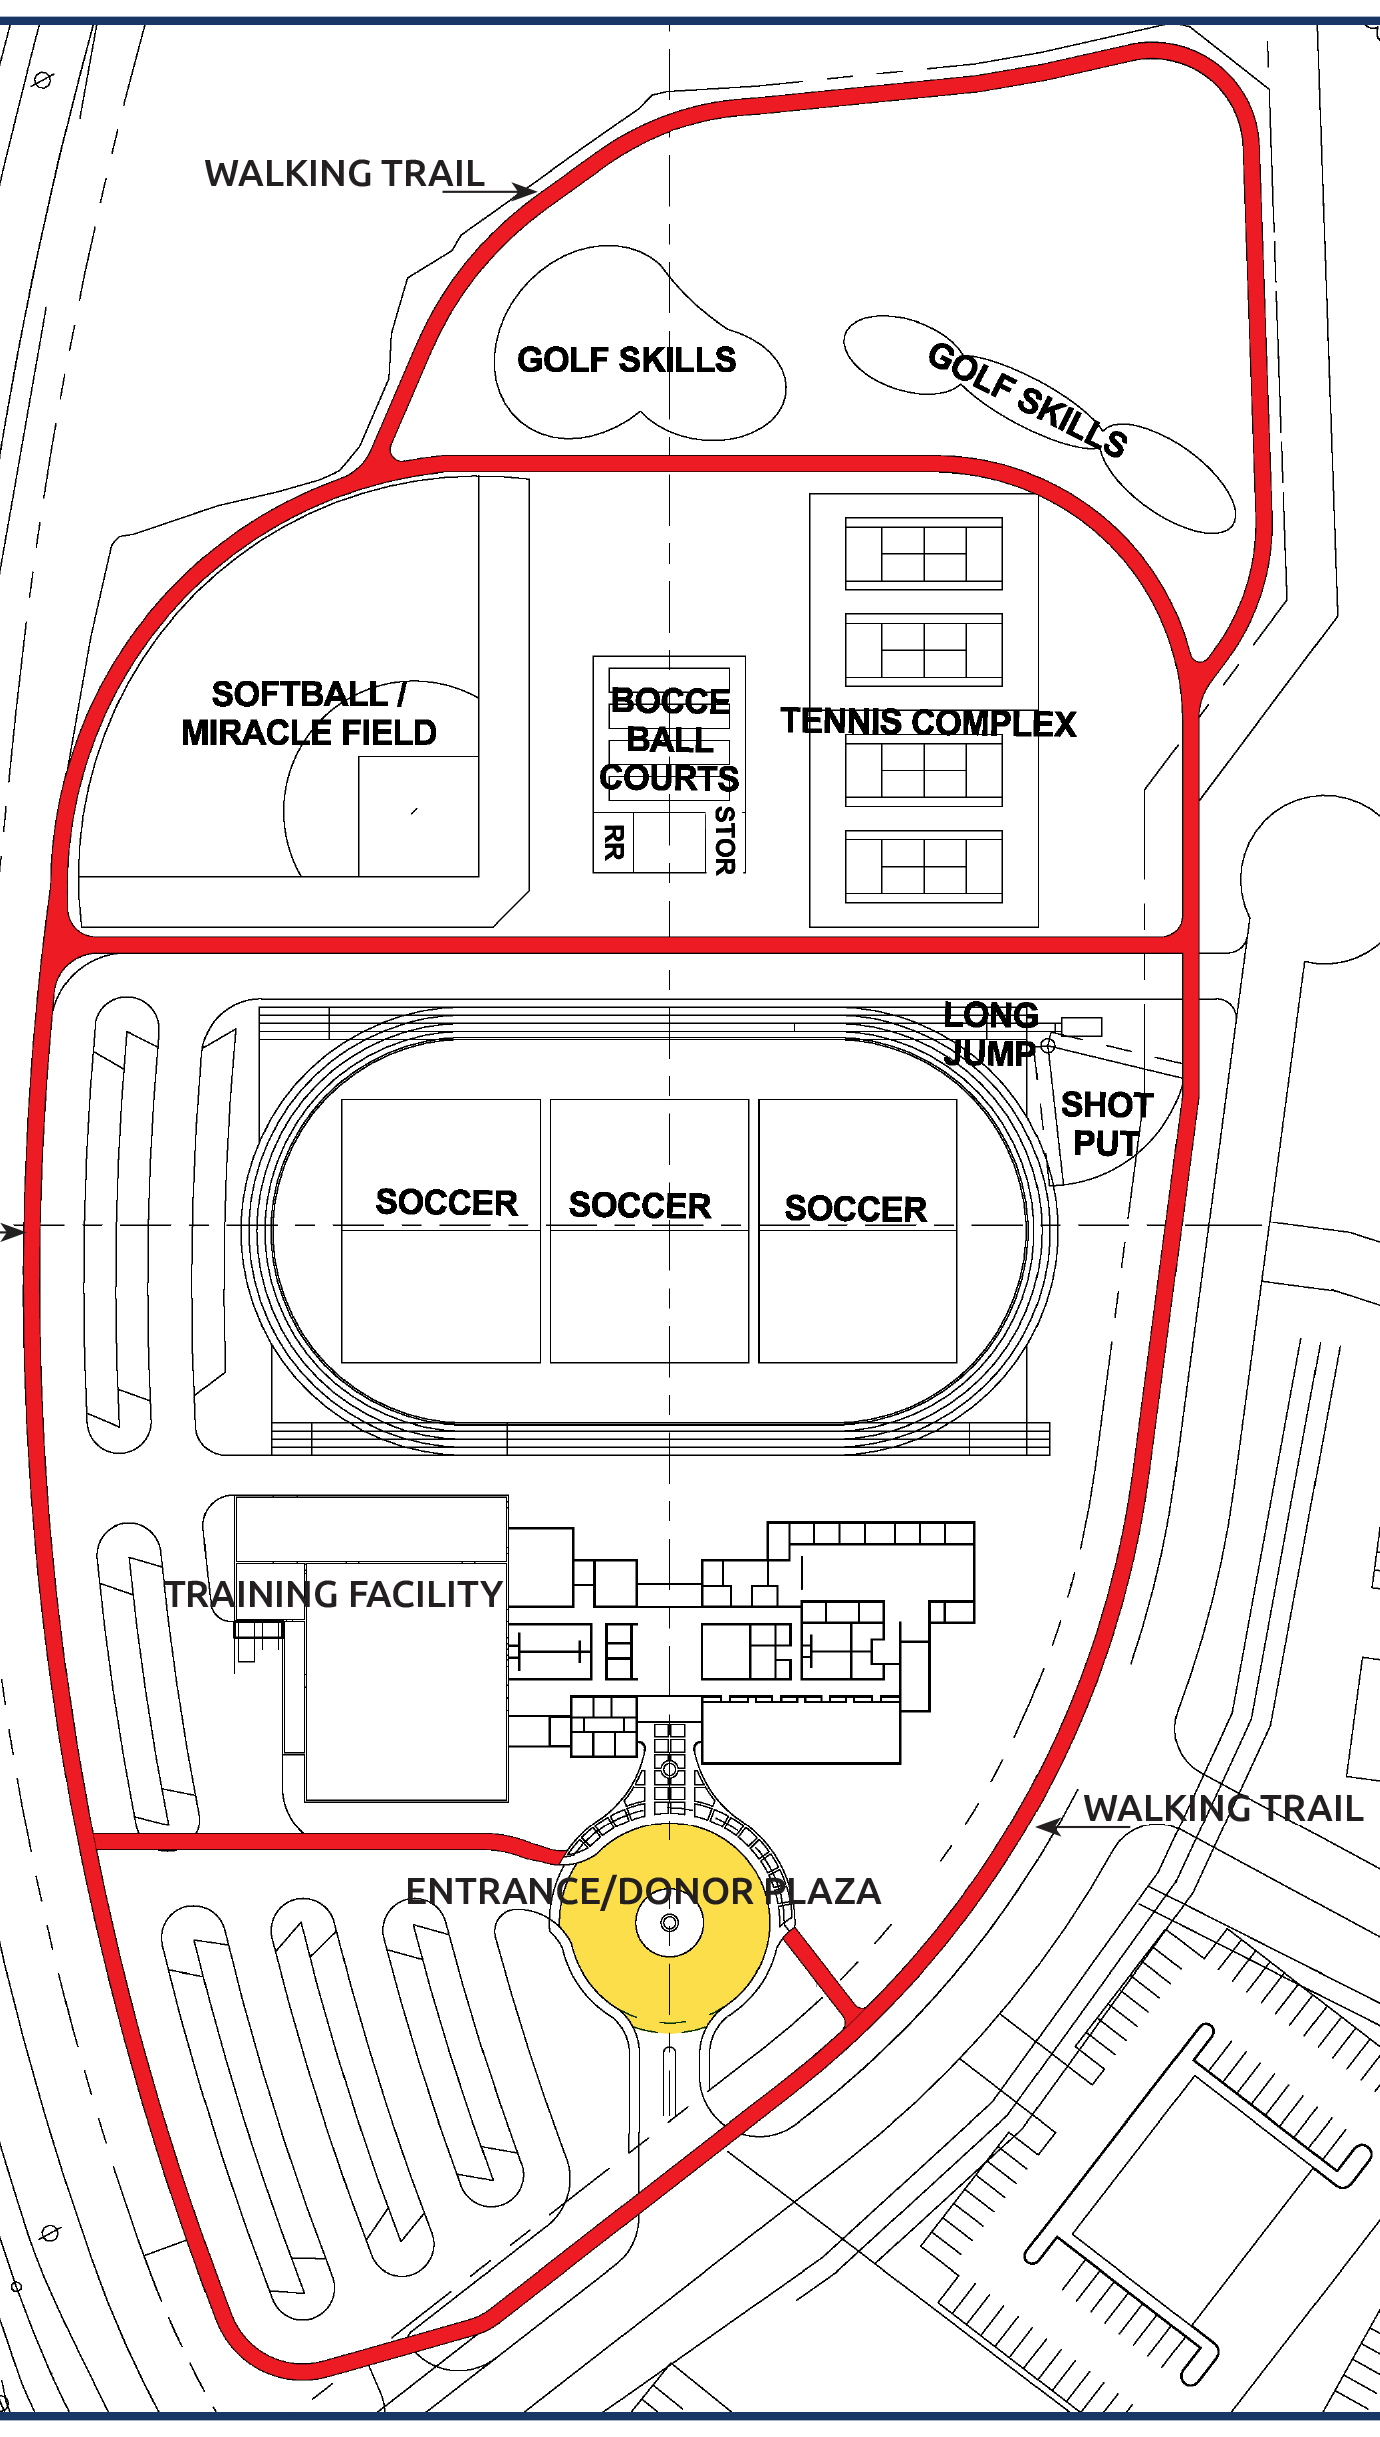 The 16.5-acre Training for Life Campus will feature training areas for many different sports. The TLC Tribute Trail, indicated above in red, begins at the Donor Plaza (to be located near the drop-off building entrance in yellow) and winds around the campus, offering opportunities for scenic strolls or exercise walking with tribute markers along the way.